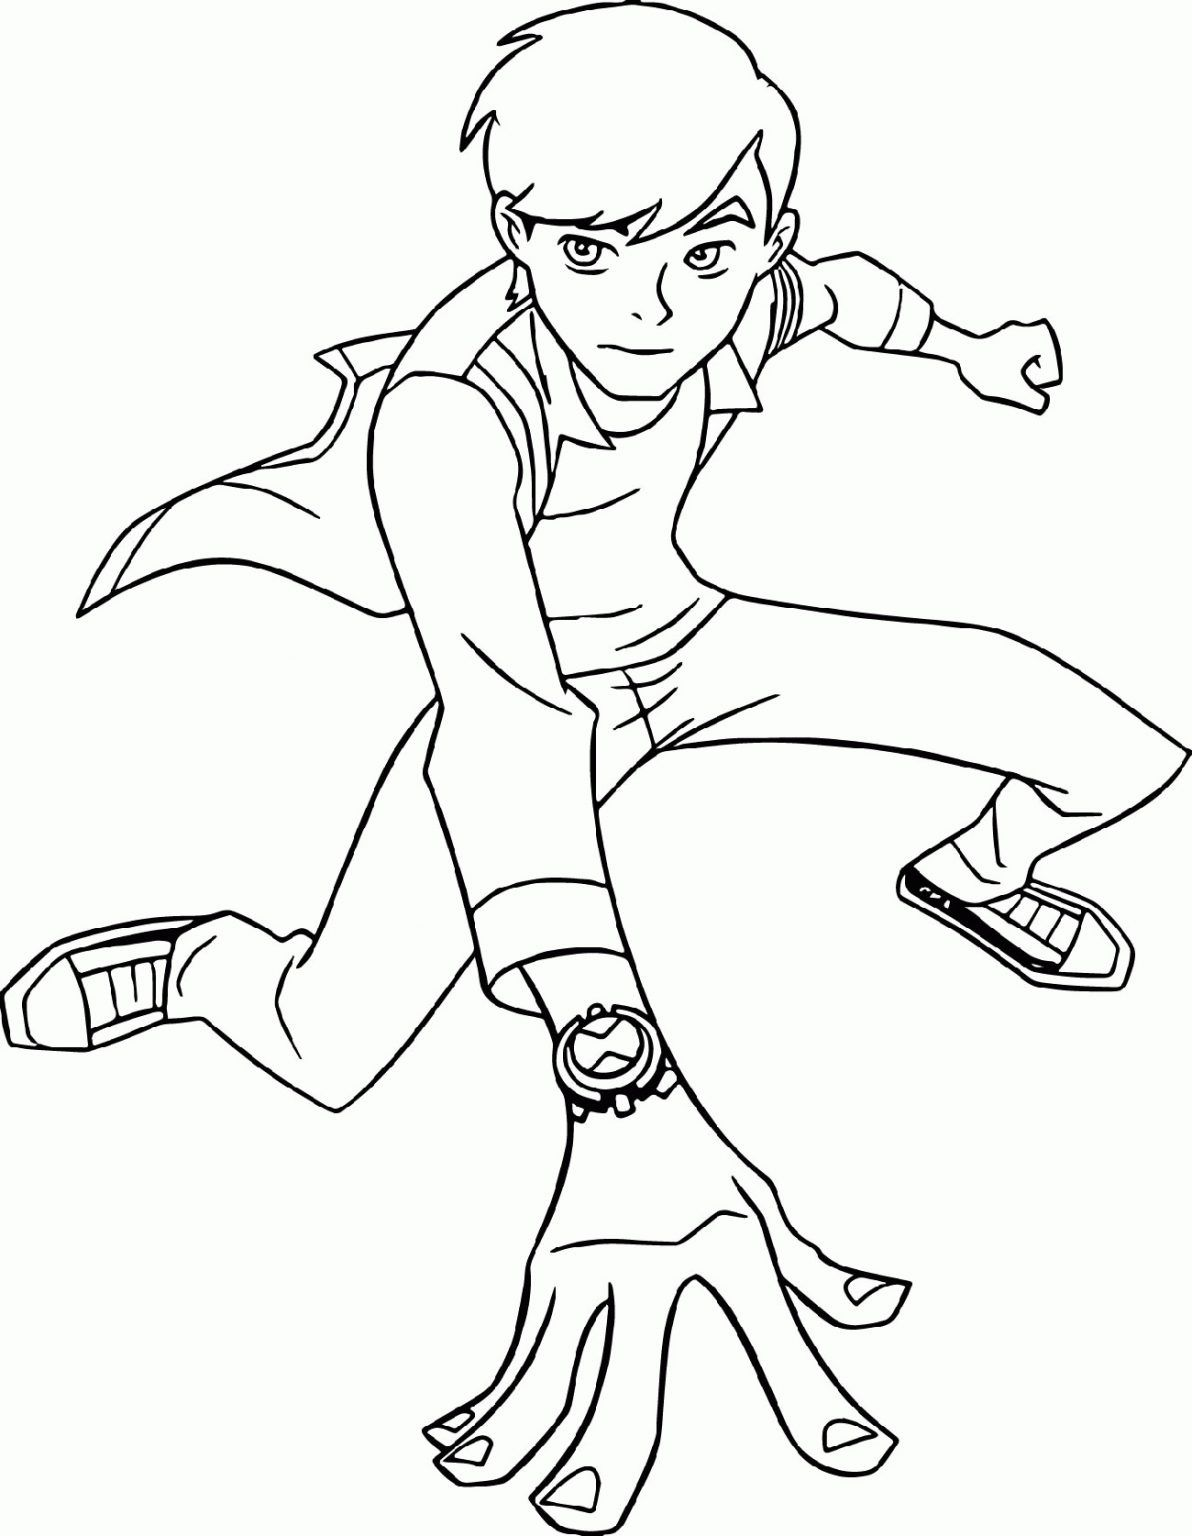 Ben 10 Coloring Pages for Children | 101 Coloring in 2020 ...